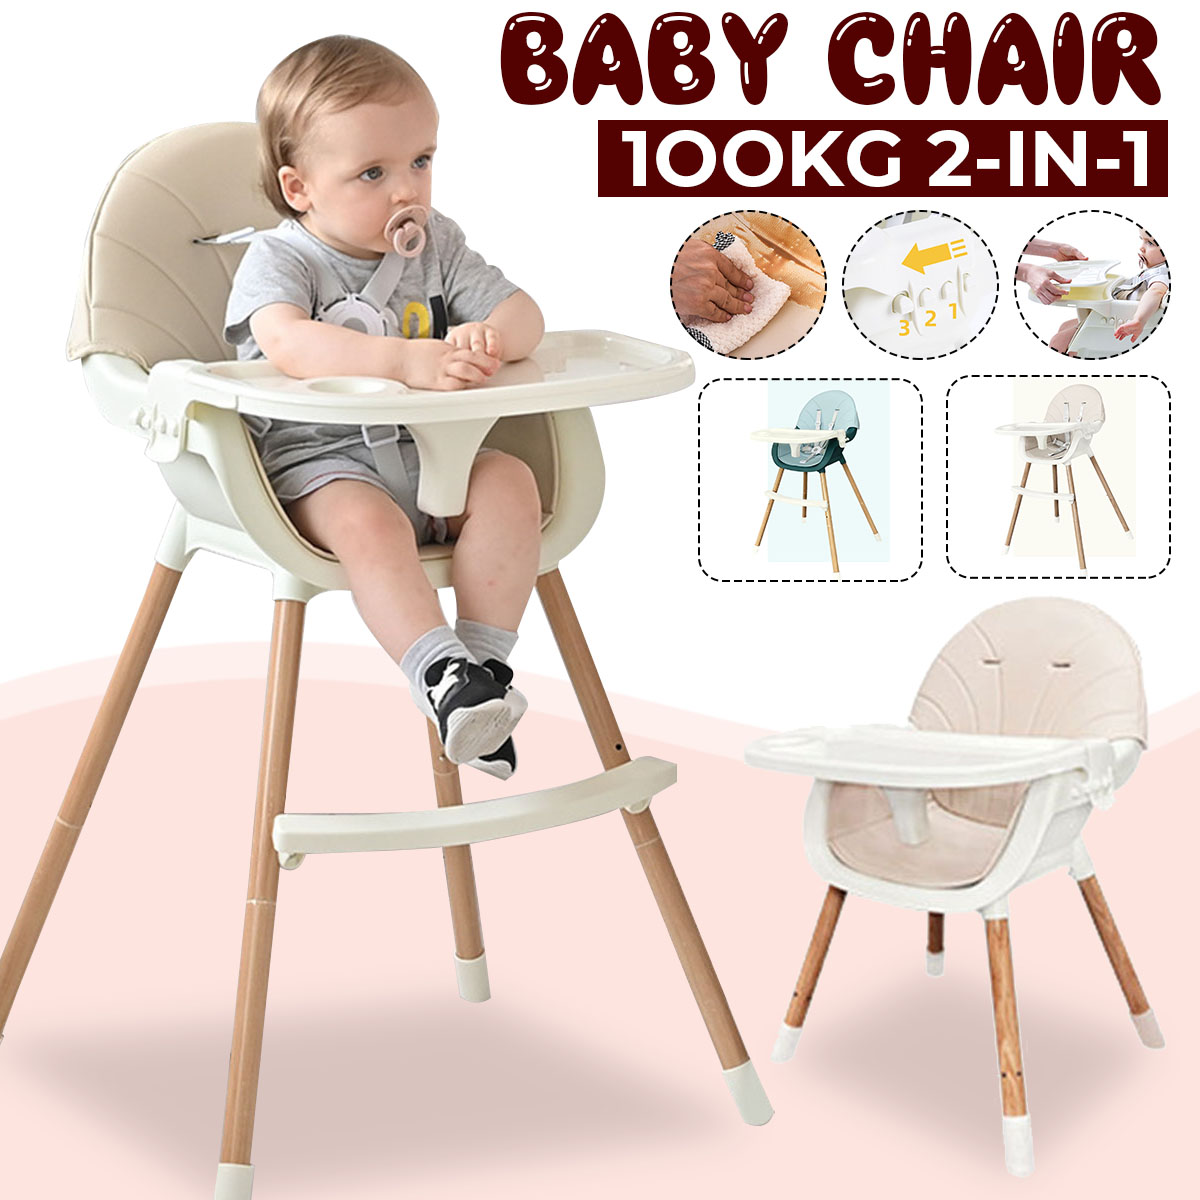 Folding Baby Chairs for Children Feeding Multifunctional Portable Double Layer Baby Dining Table Seats with PU Cover